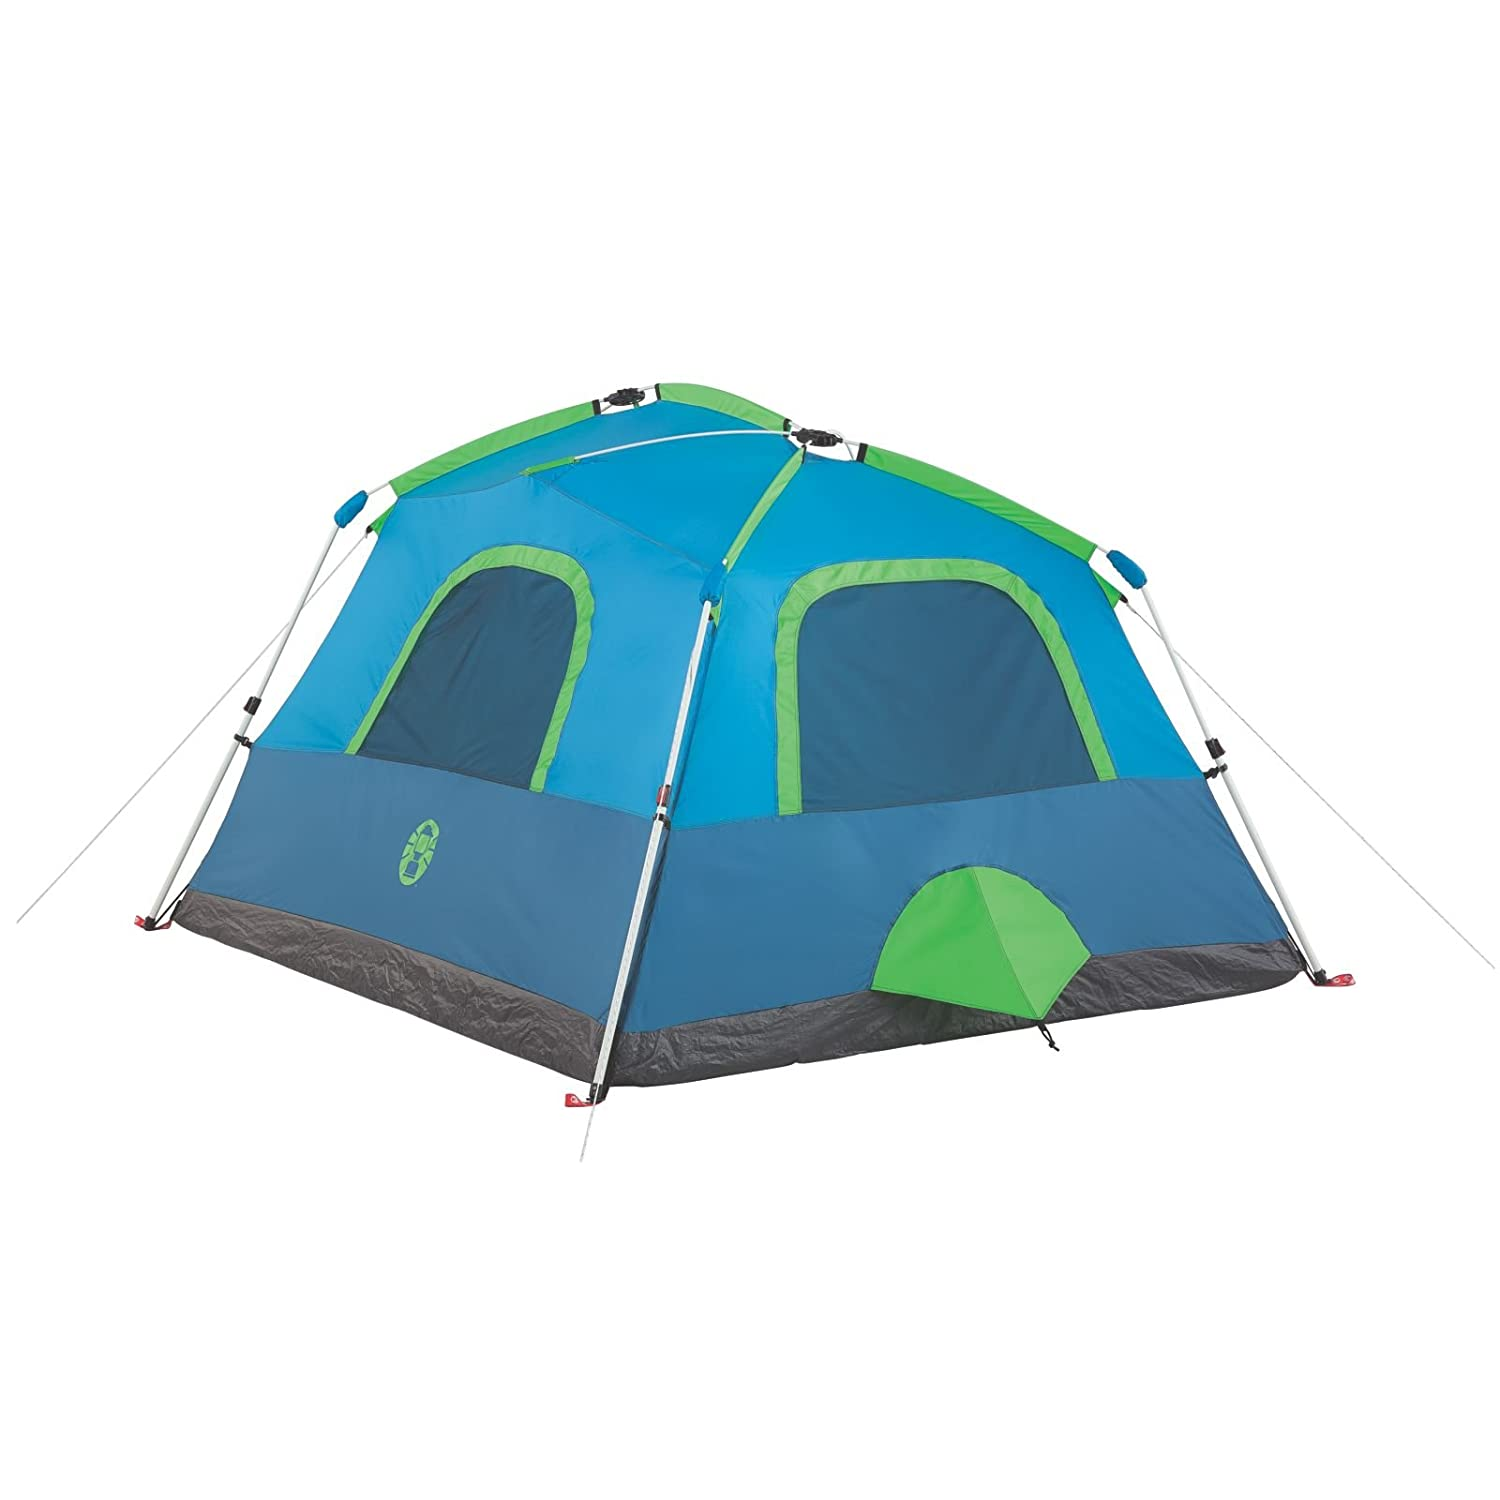 Amazon.com  Coleman C&ing 4 Person Instant Signal Mountain Tent  Sports u0026 Outdoors  sc 1 st  Amazon.com & Amazon.com : Coleman Camping 4 Person Instant Signal Mountain Tent ...